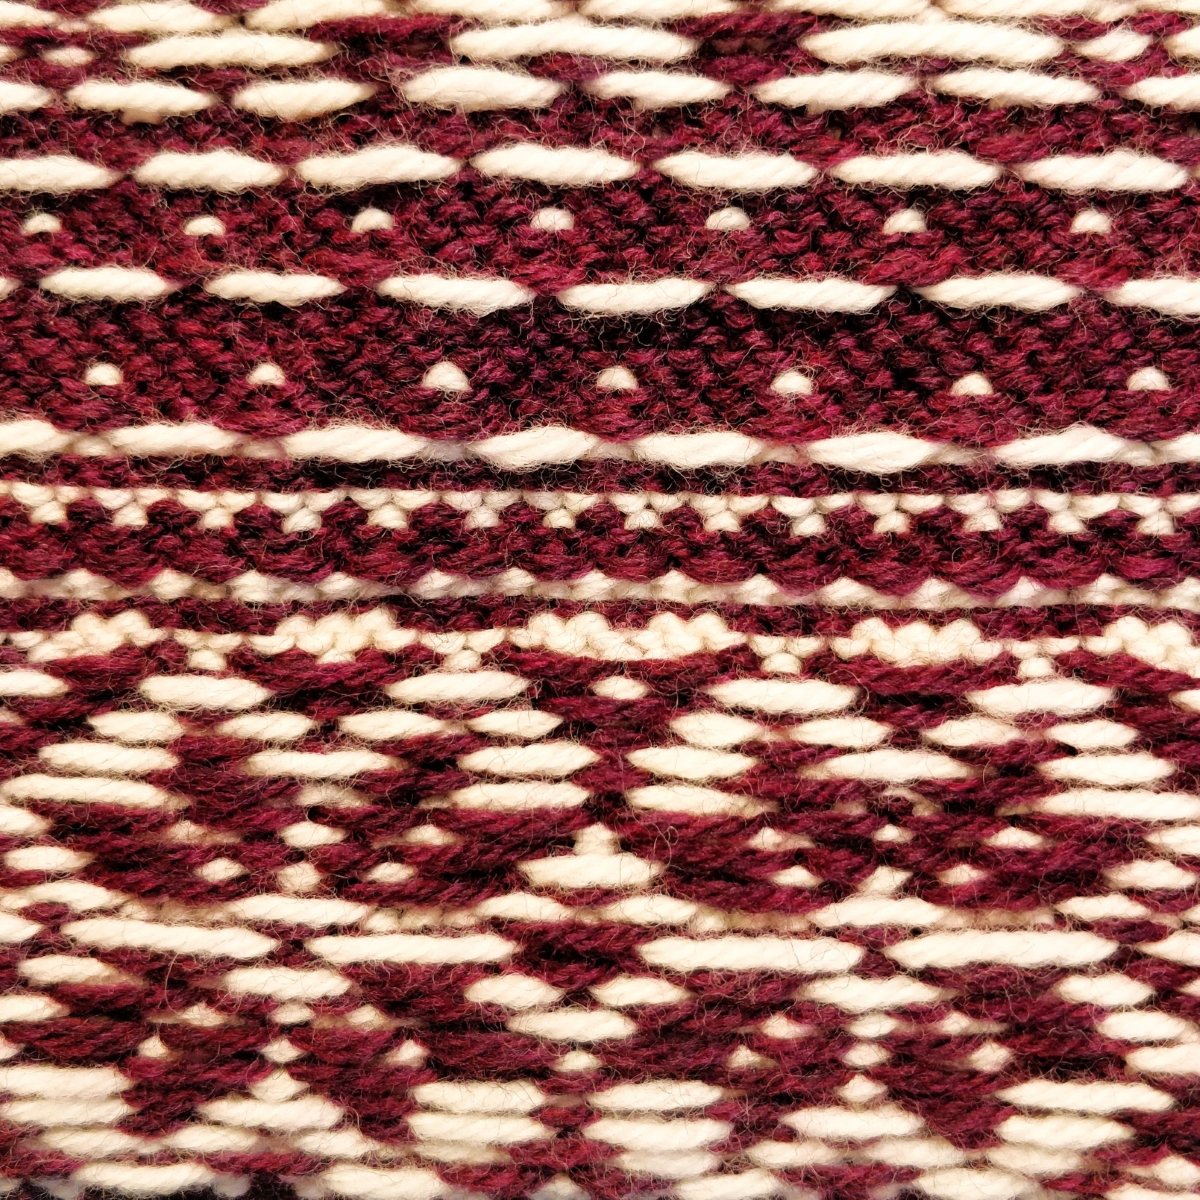 Red and white stranded colourwork as seen from the inside. Star/snowflake shapes are on the bottom, and a series of dashes and dots on the top.